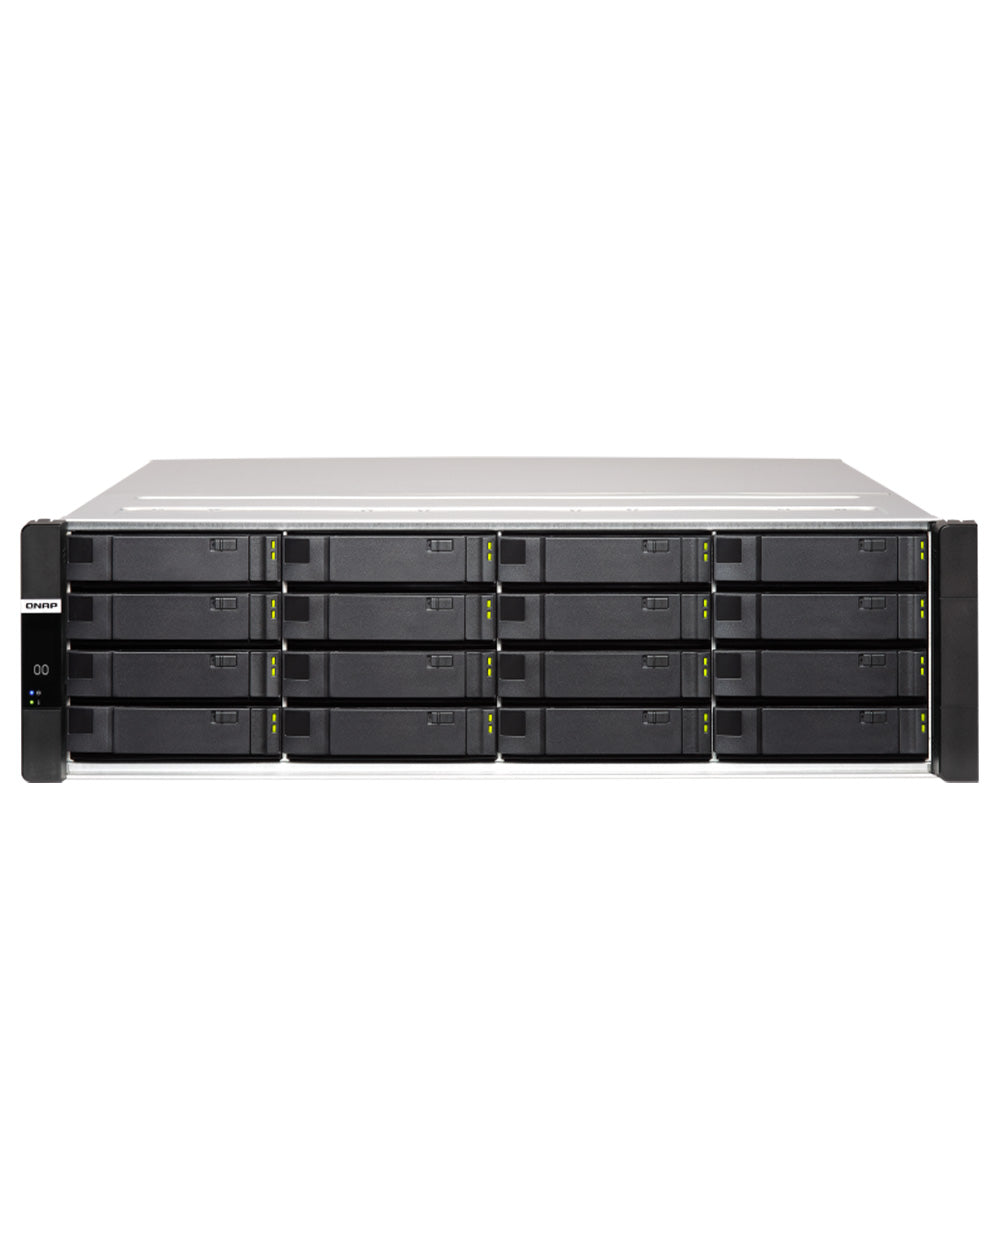 QNAP ES1686dc-2142IT-96G 16-Bay Diskless 3U Rackmount NAS